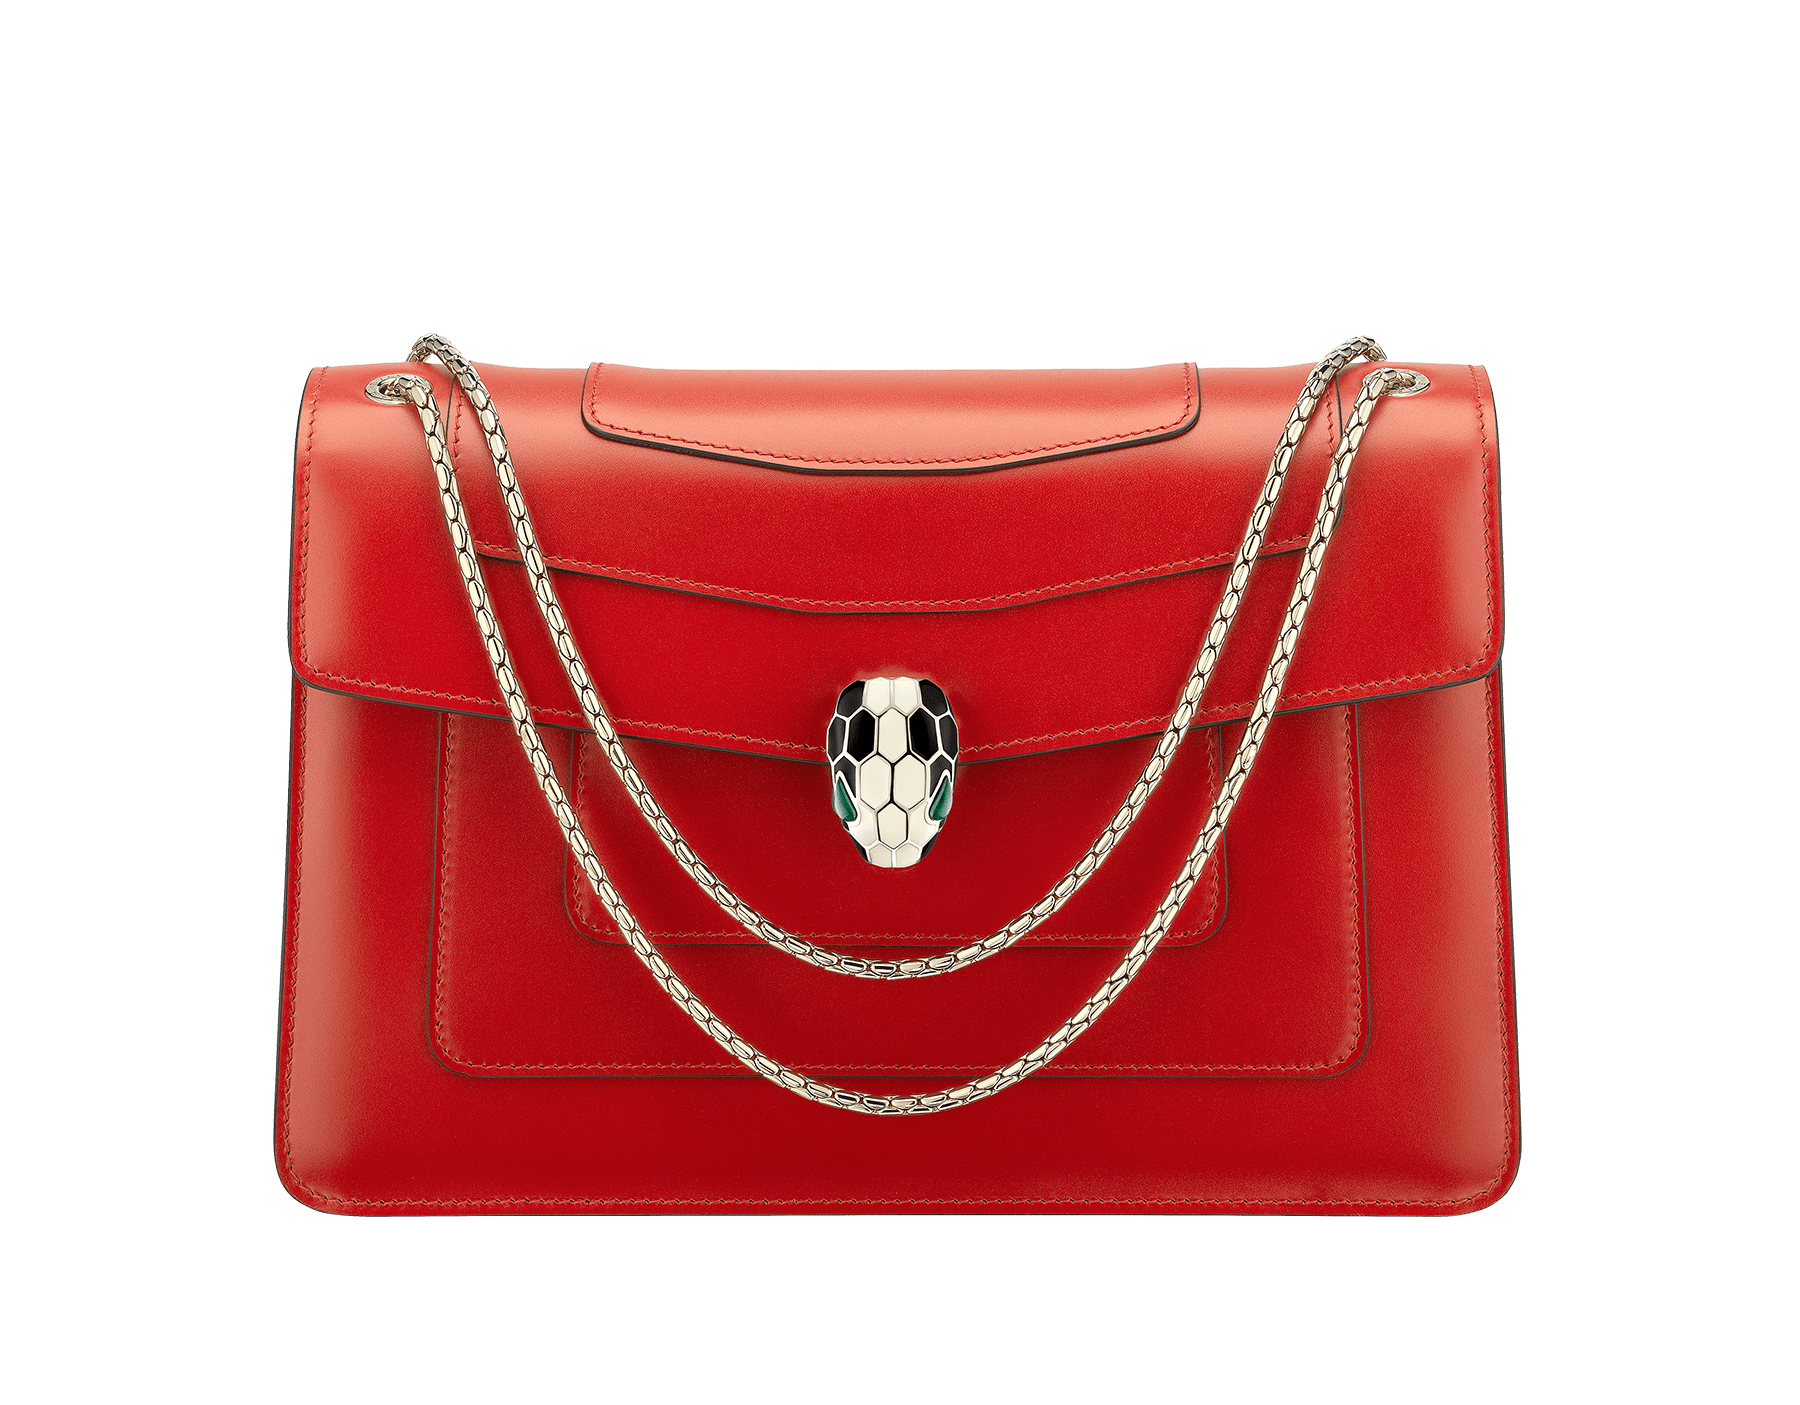 """Serpenti Forever "" shoulder bag in carmine jasper calf leather. Iconic snakehead closure in light gold plated brass enriched with black and white enamel and green malachite eyes 521-CLd image 1"